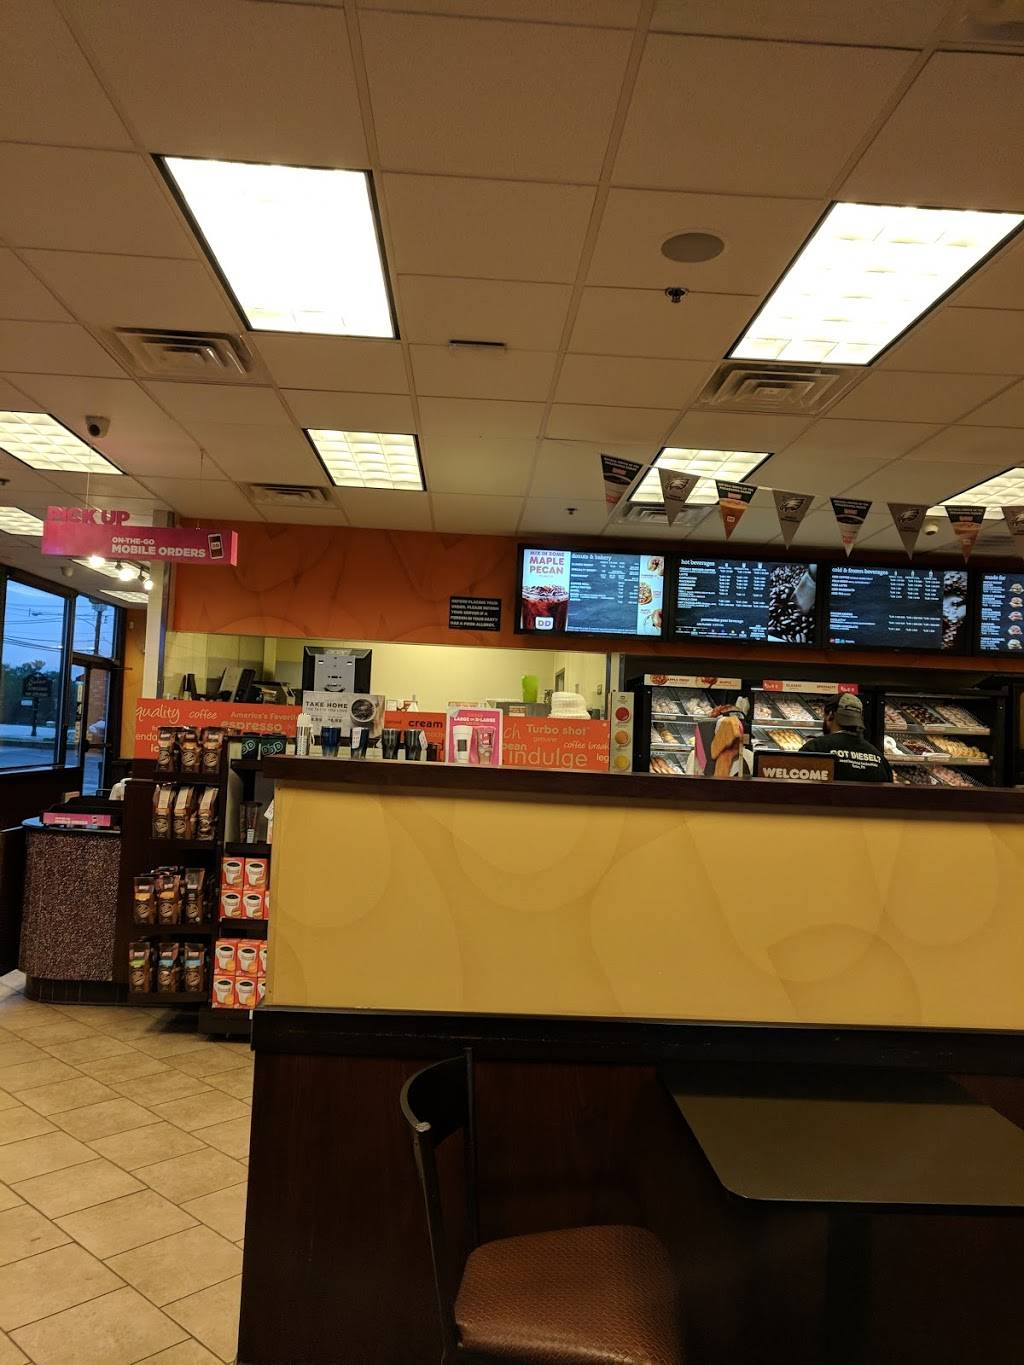 Dunkin | cafe | 100 W Germantown Pike, East Norriton, PA 19401, USA | 4846791370 OR +1 484-679-1370